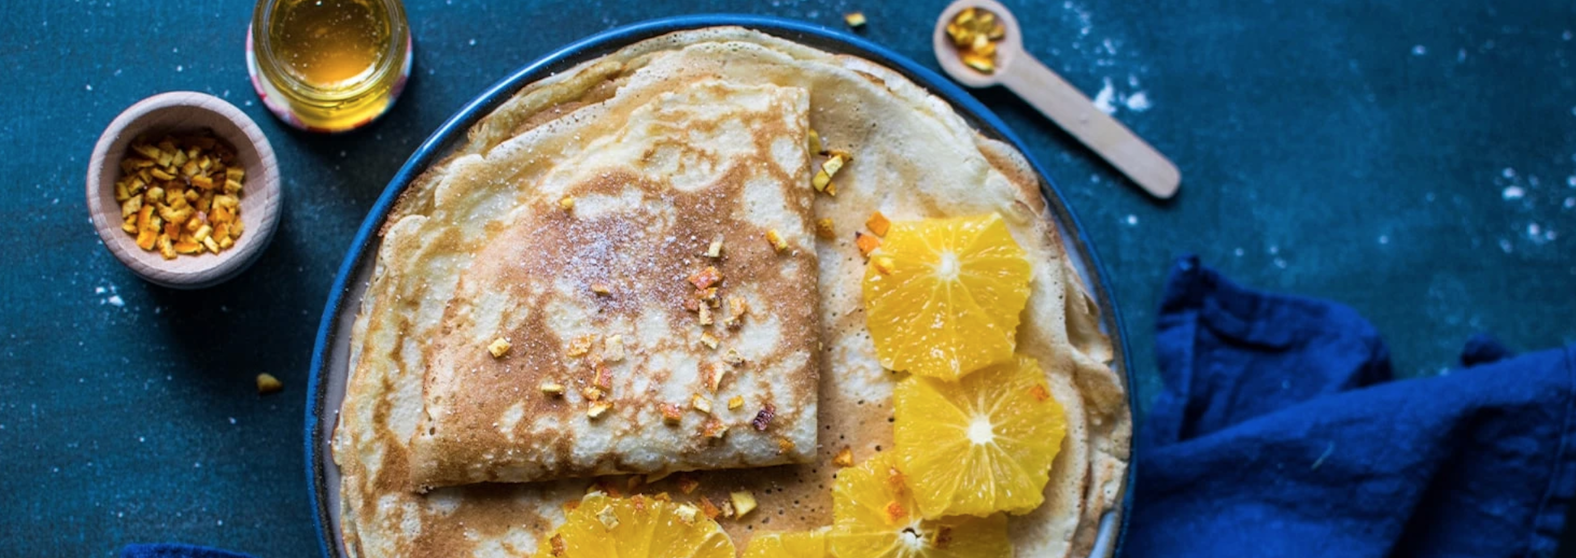 Image of Crepes Suzette with Brown Butter Truffle Honey